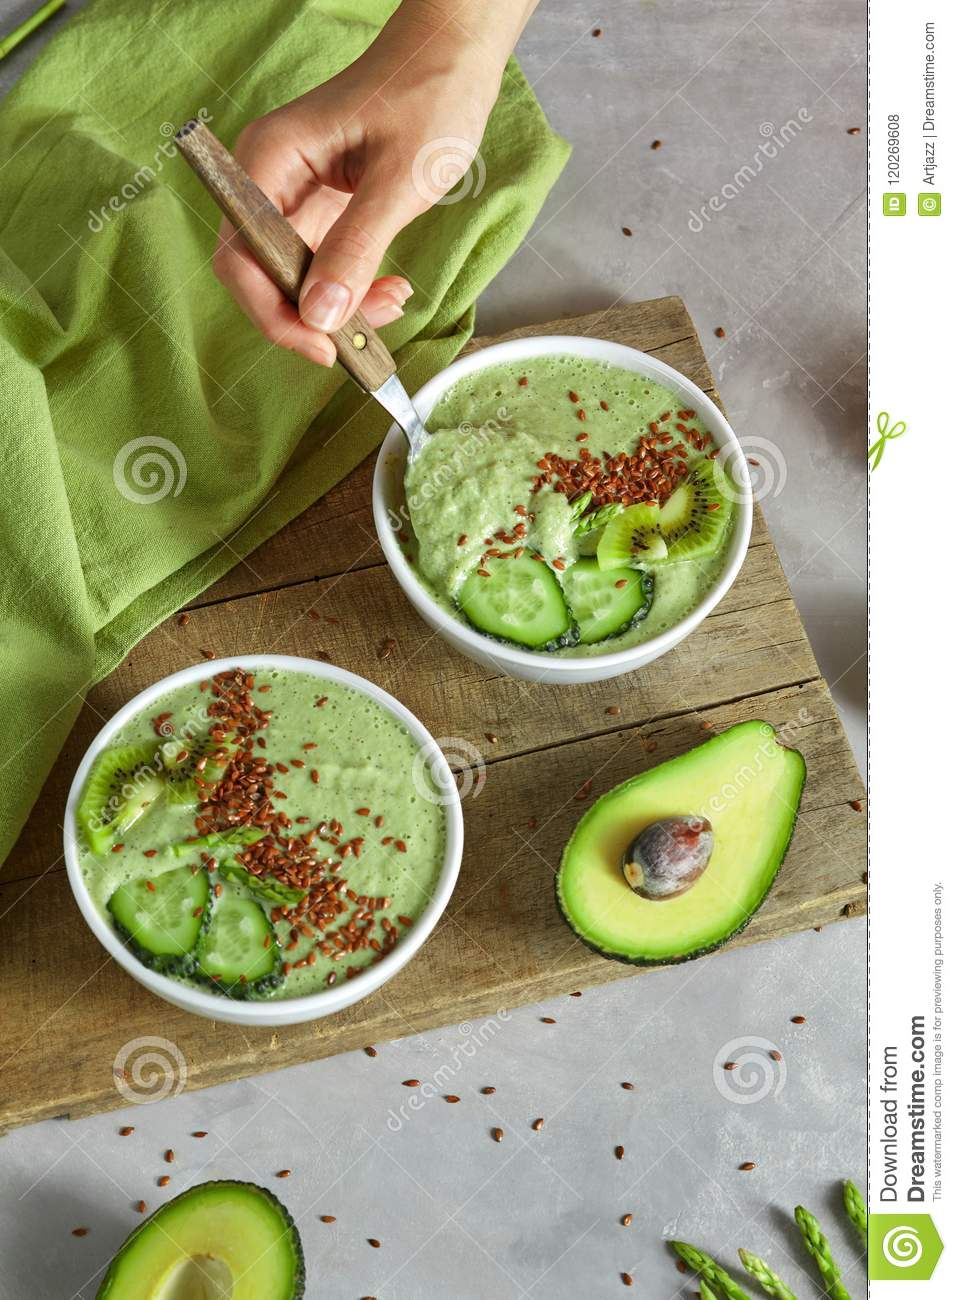 Healthy Green Smoothies From Avocado Cucumber Kiwi And Flax Seeds